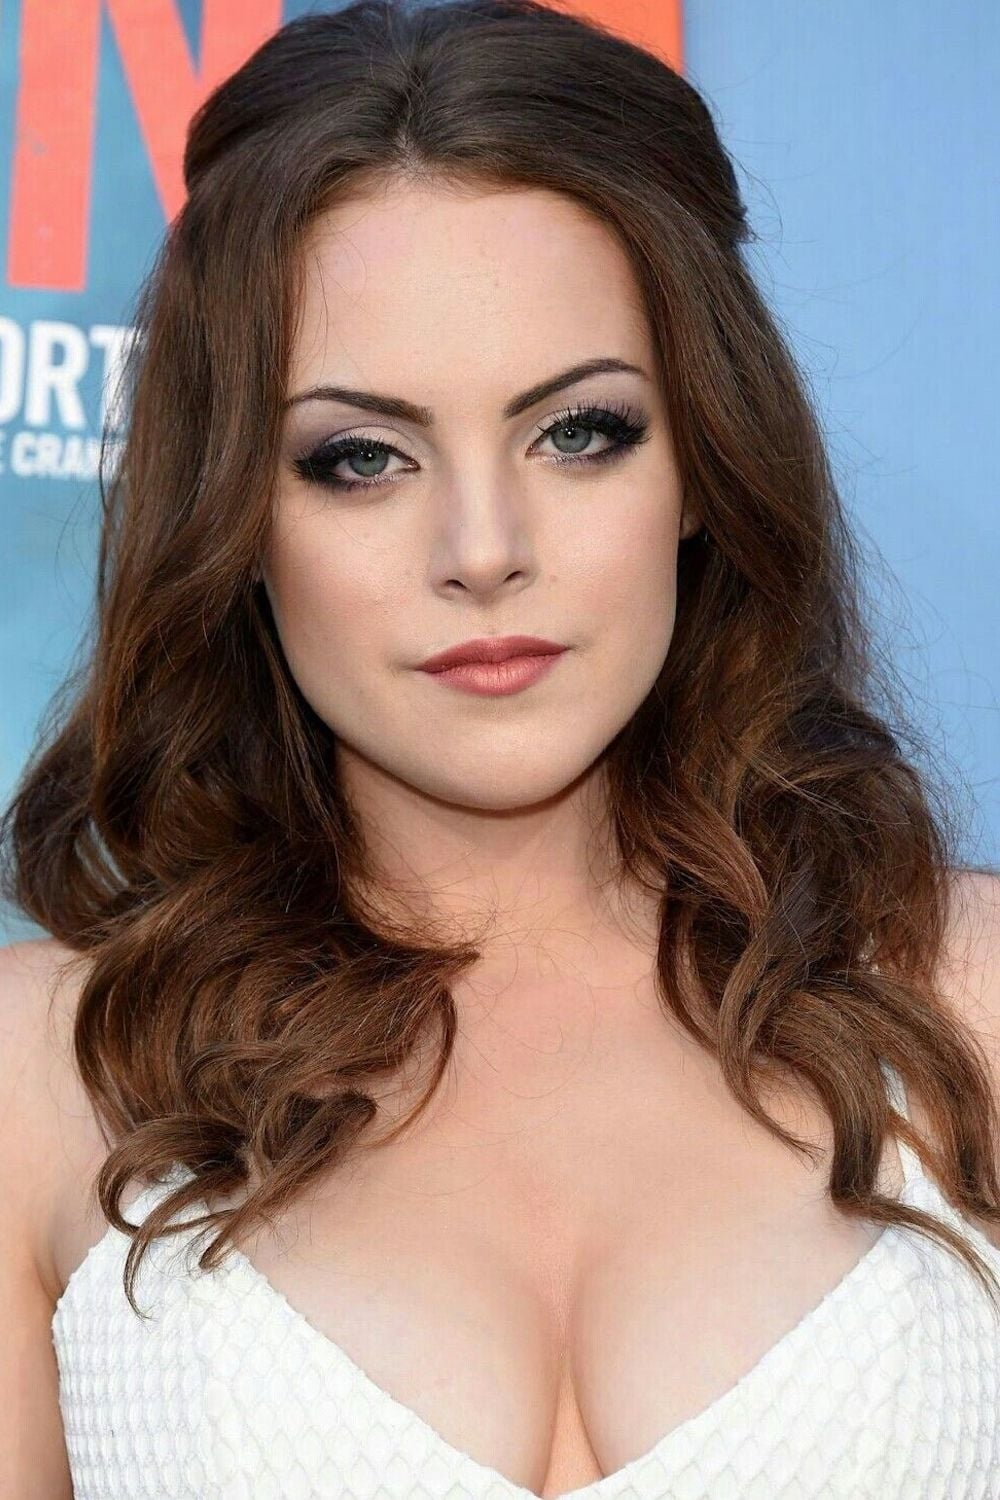 Elizabeth Gillies Top Must Watch Movies of All Time Online Streaming